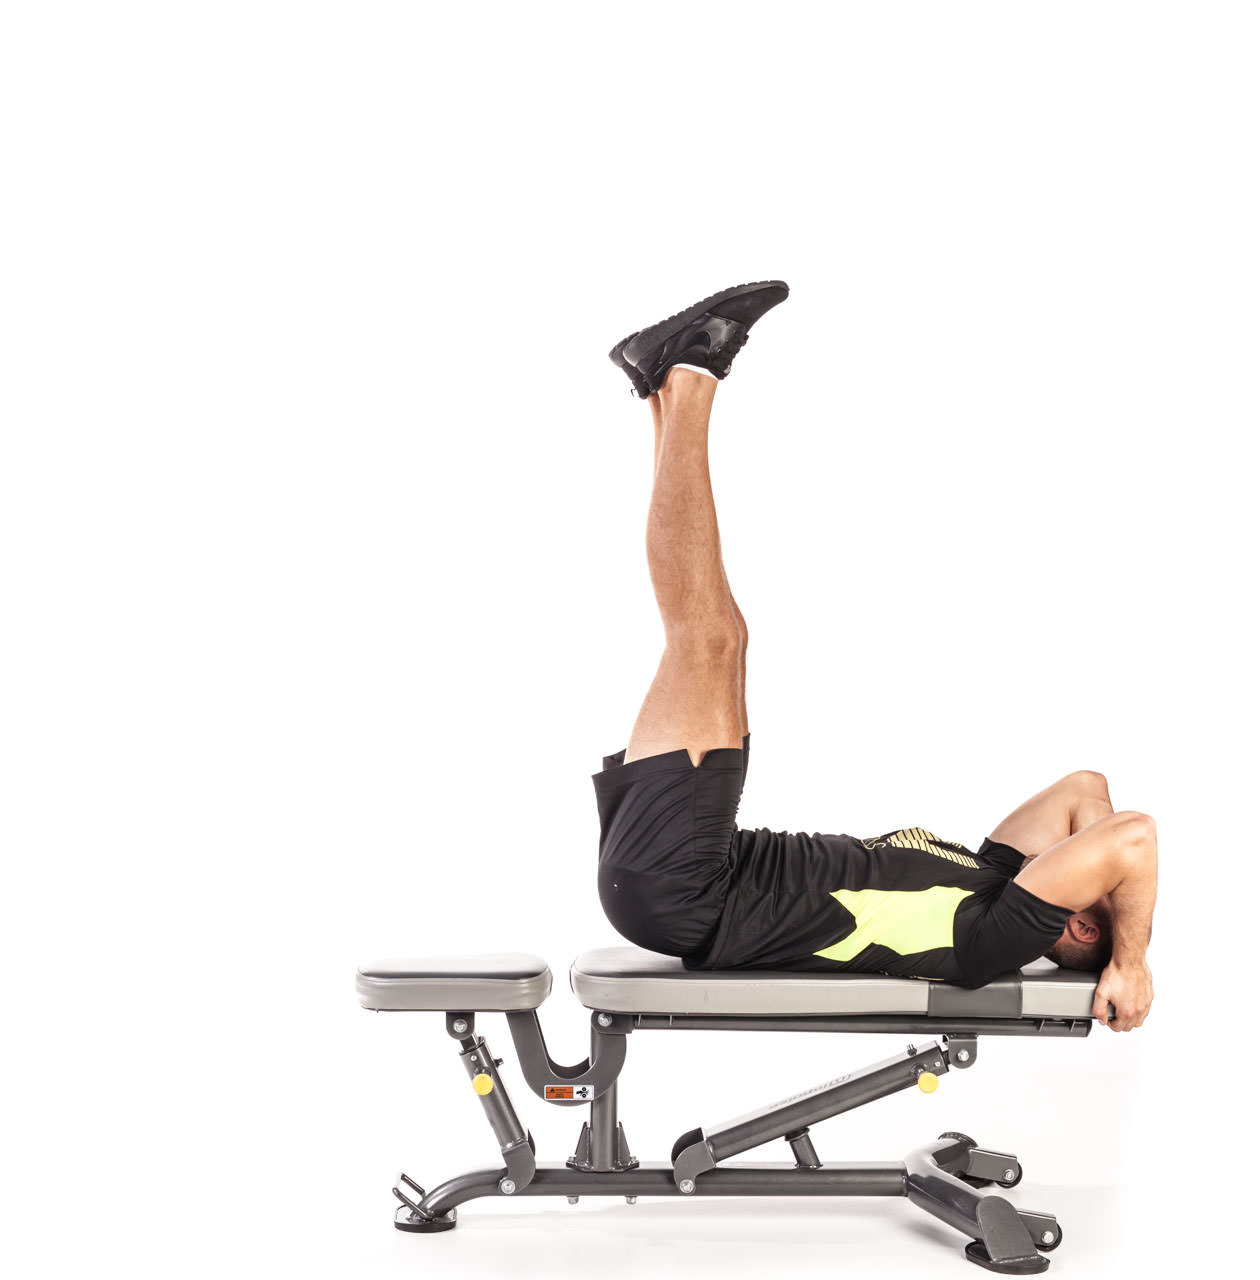 Flat Bench Leg and Hip Raise frame #2